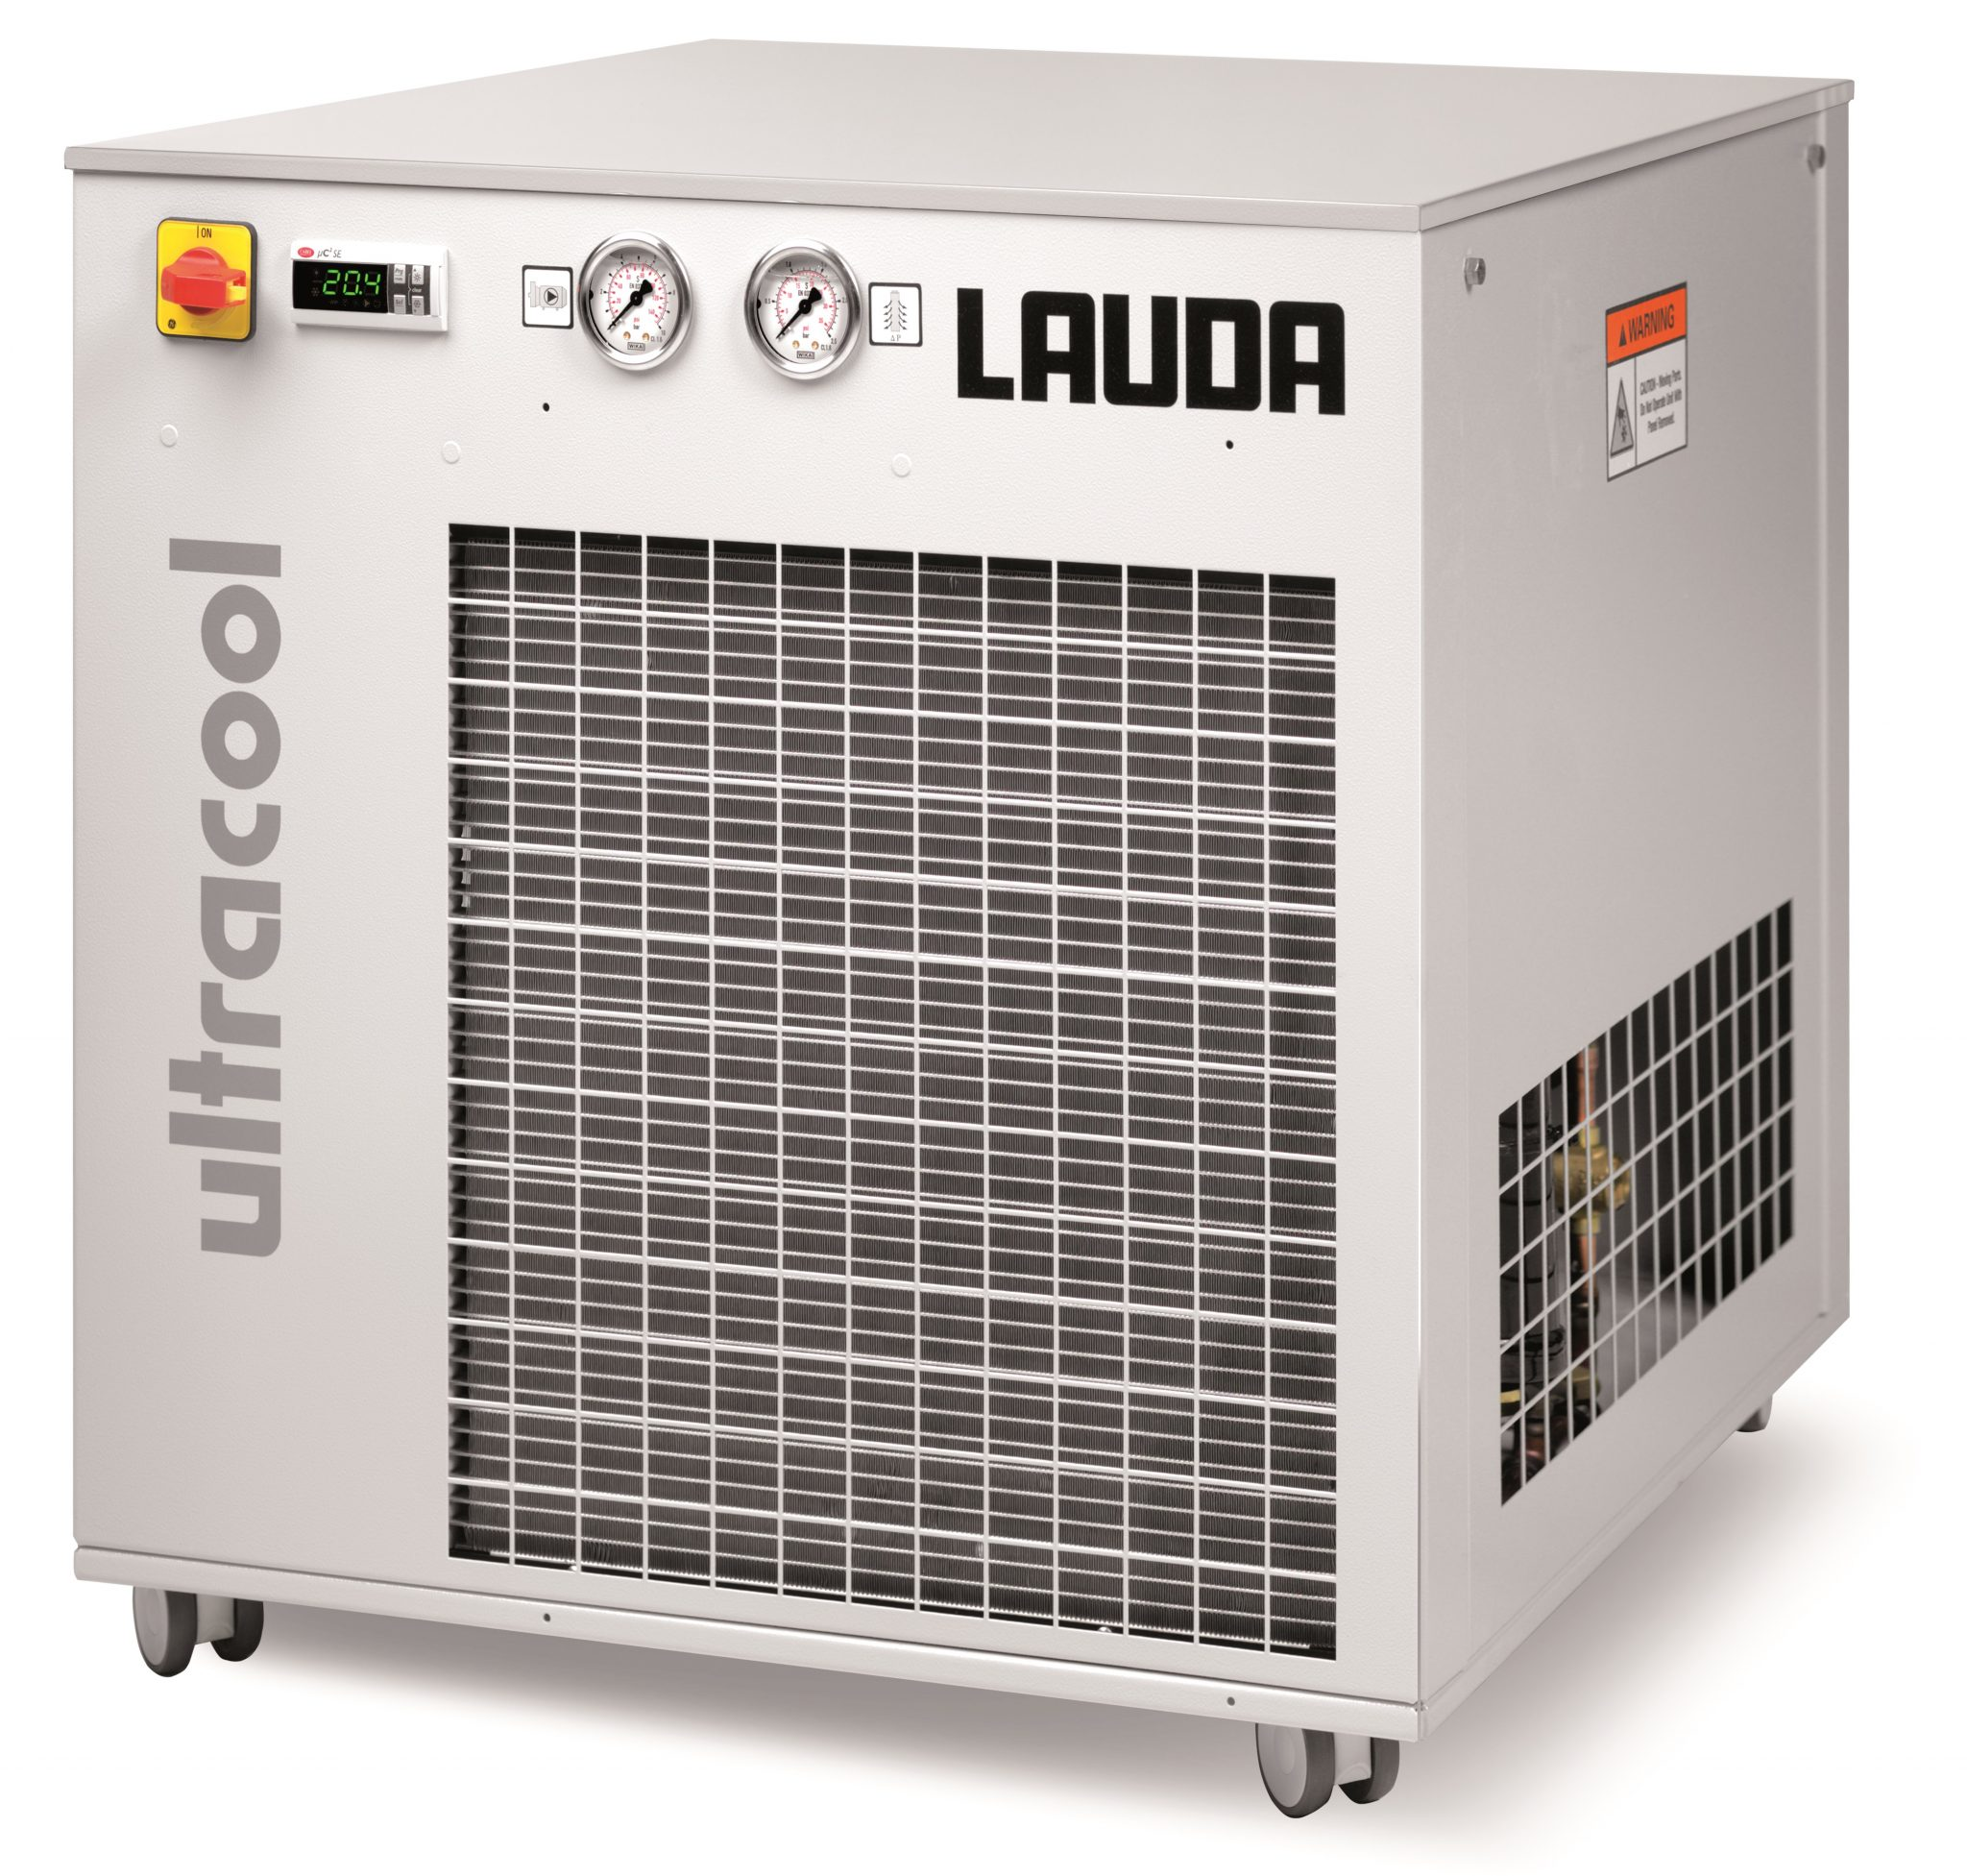 Ultracool UC Mini Industrial Chillers thermalexchange.co.uk  #C2A109